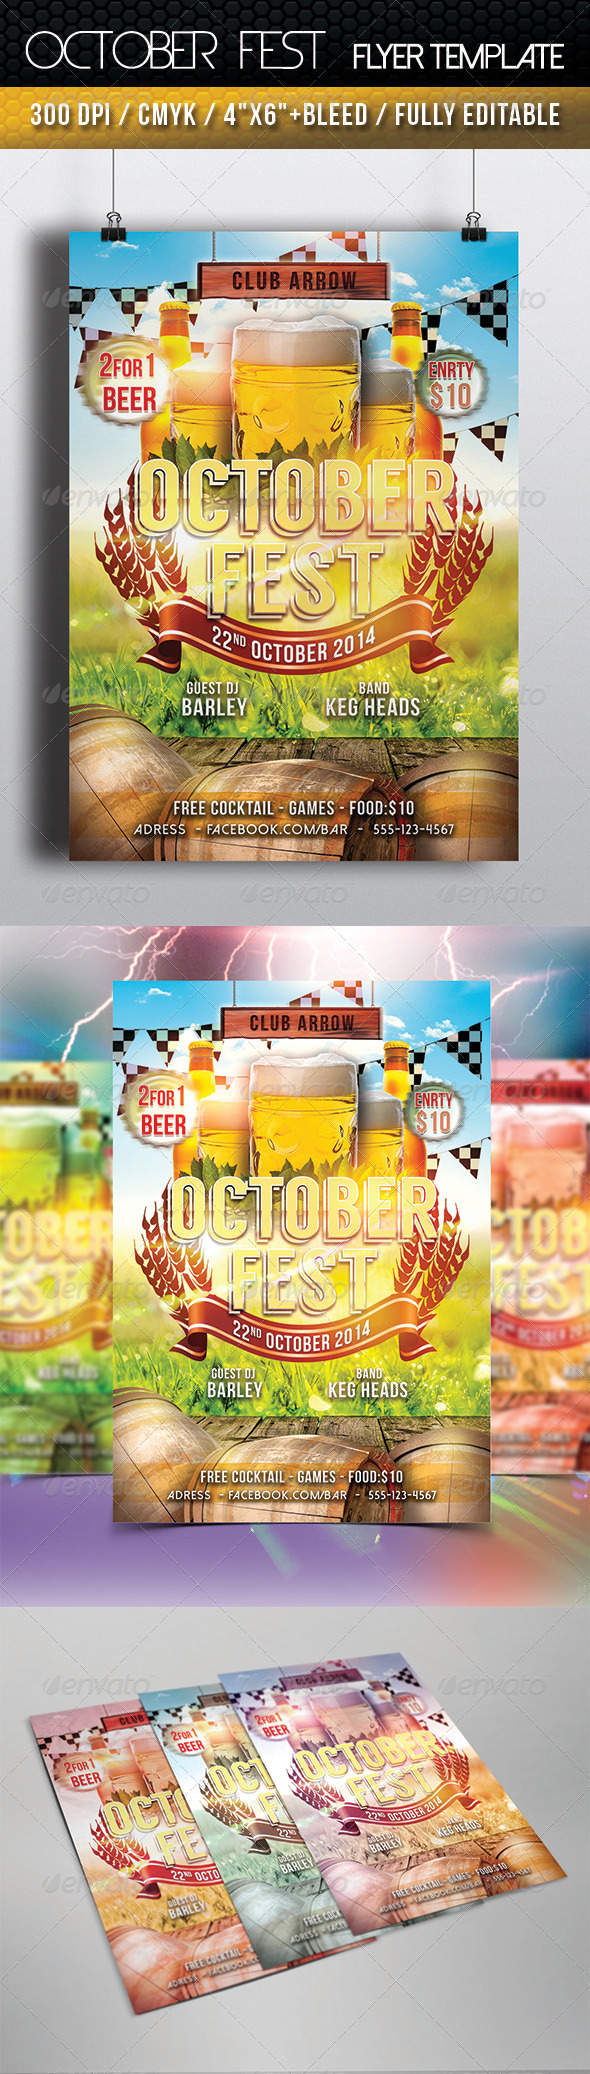 GraphicRiver October Fest Flyer Template 8684313